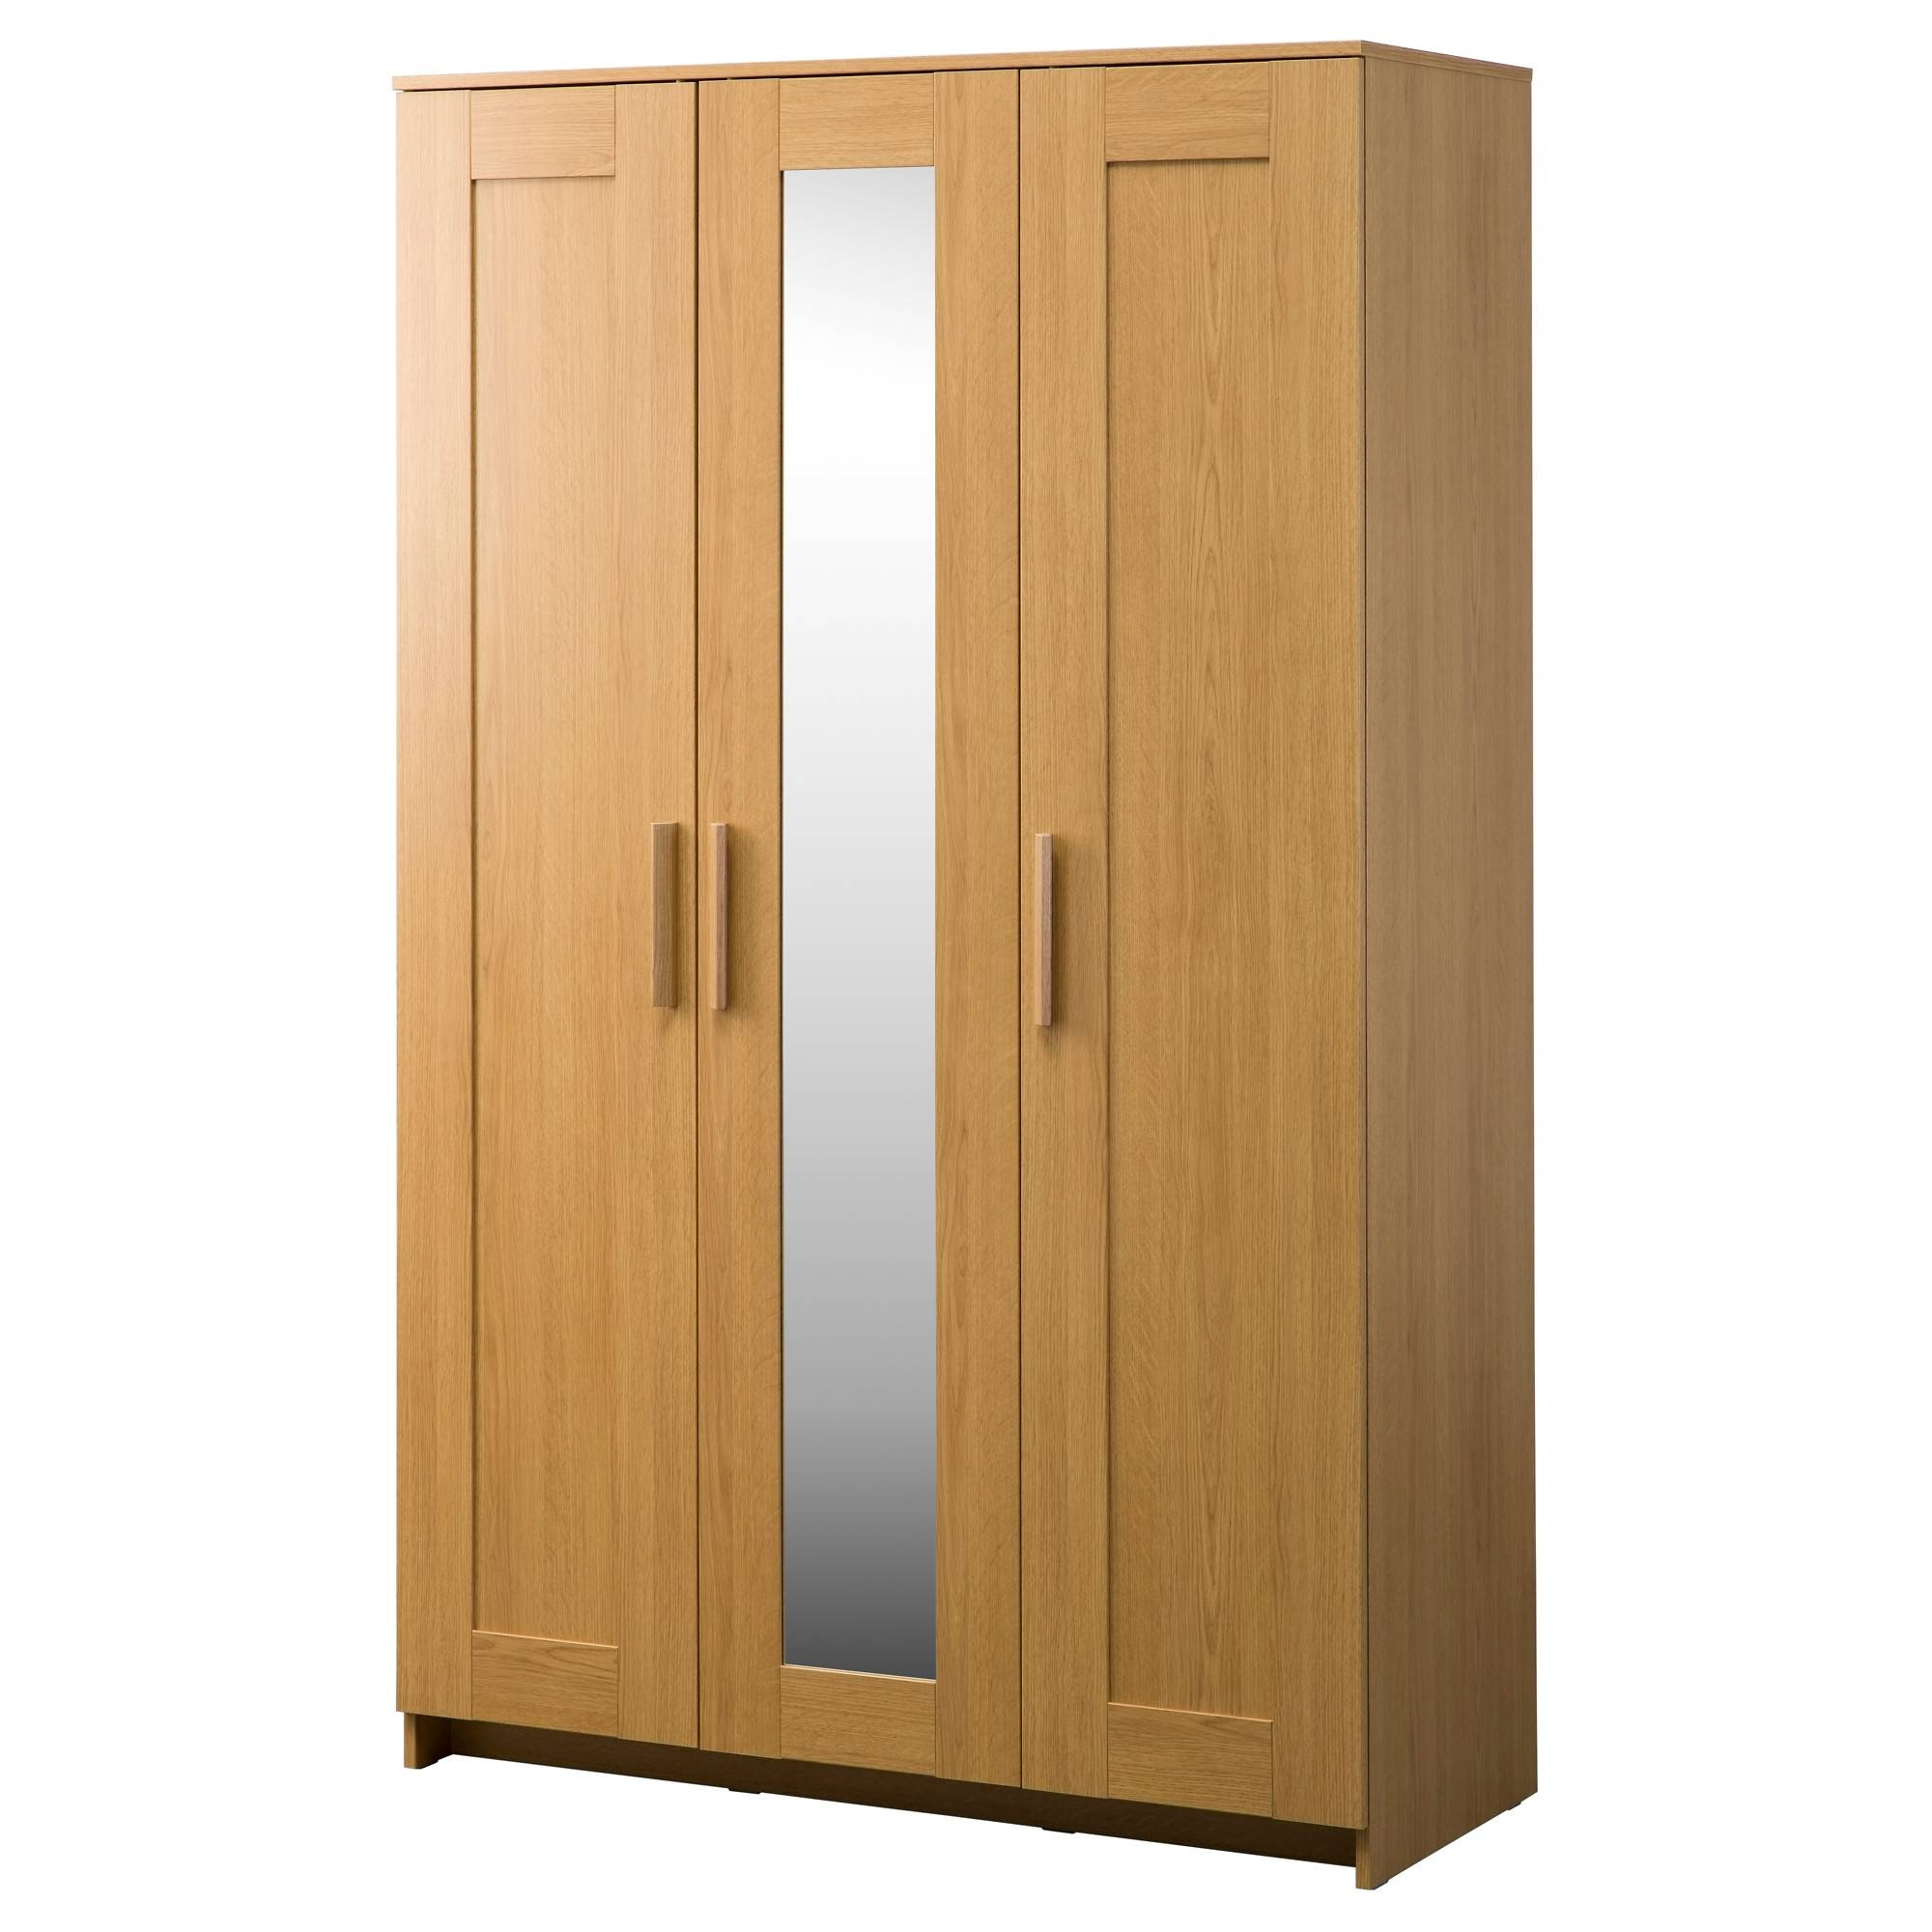 Wardrobes | Ikea intended for Double Wardrobes (Image 14 of 15)